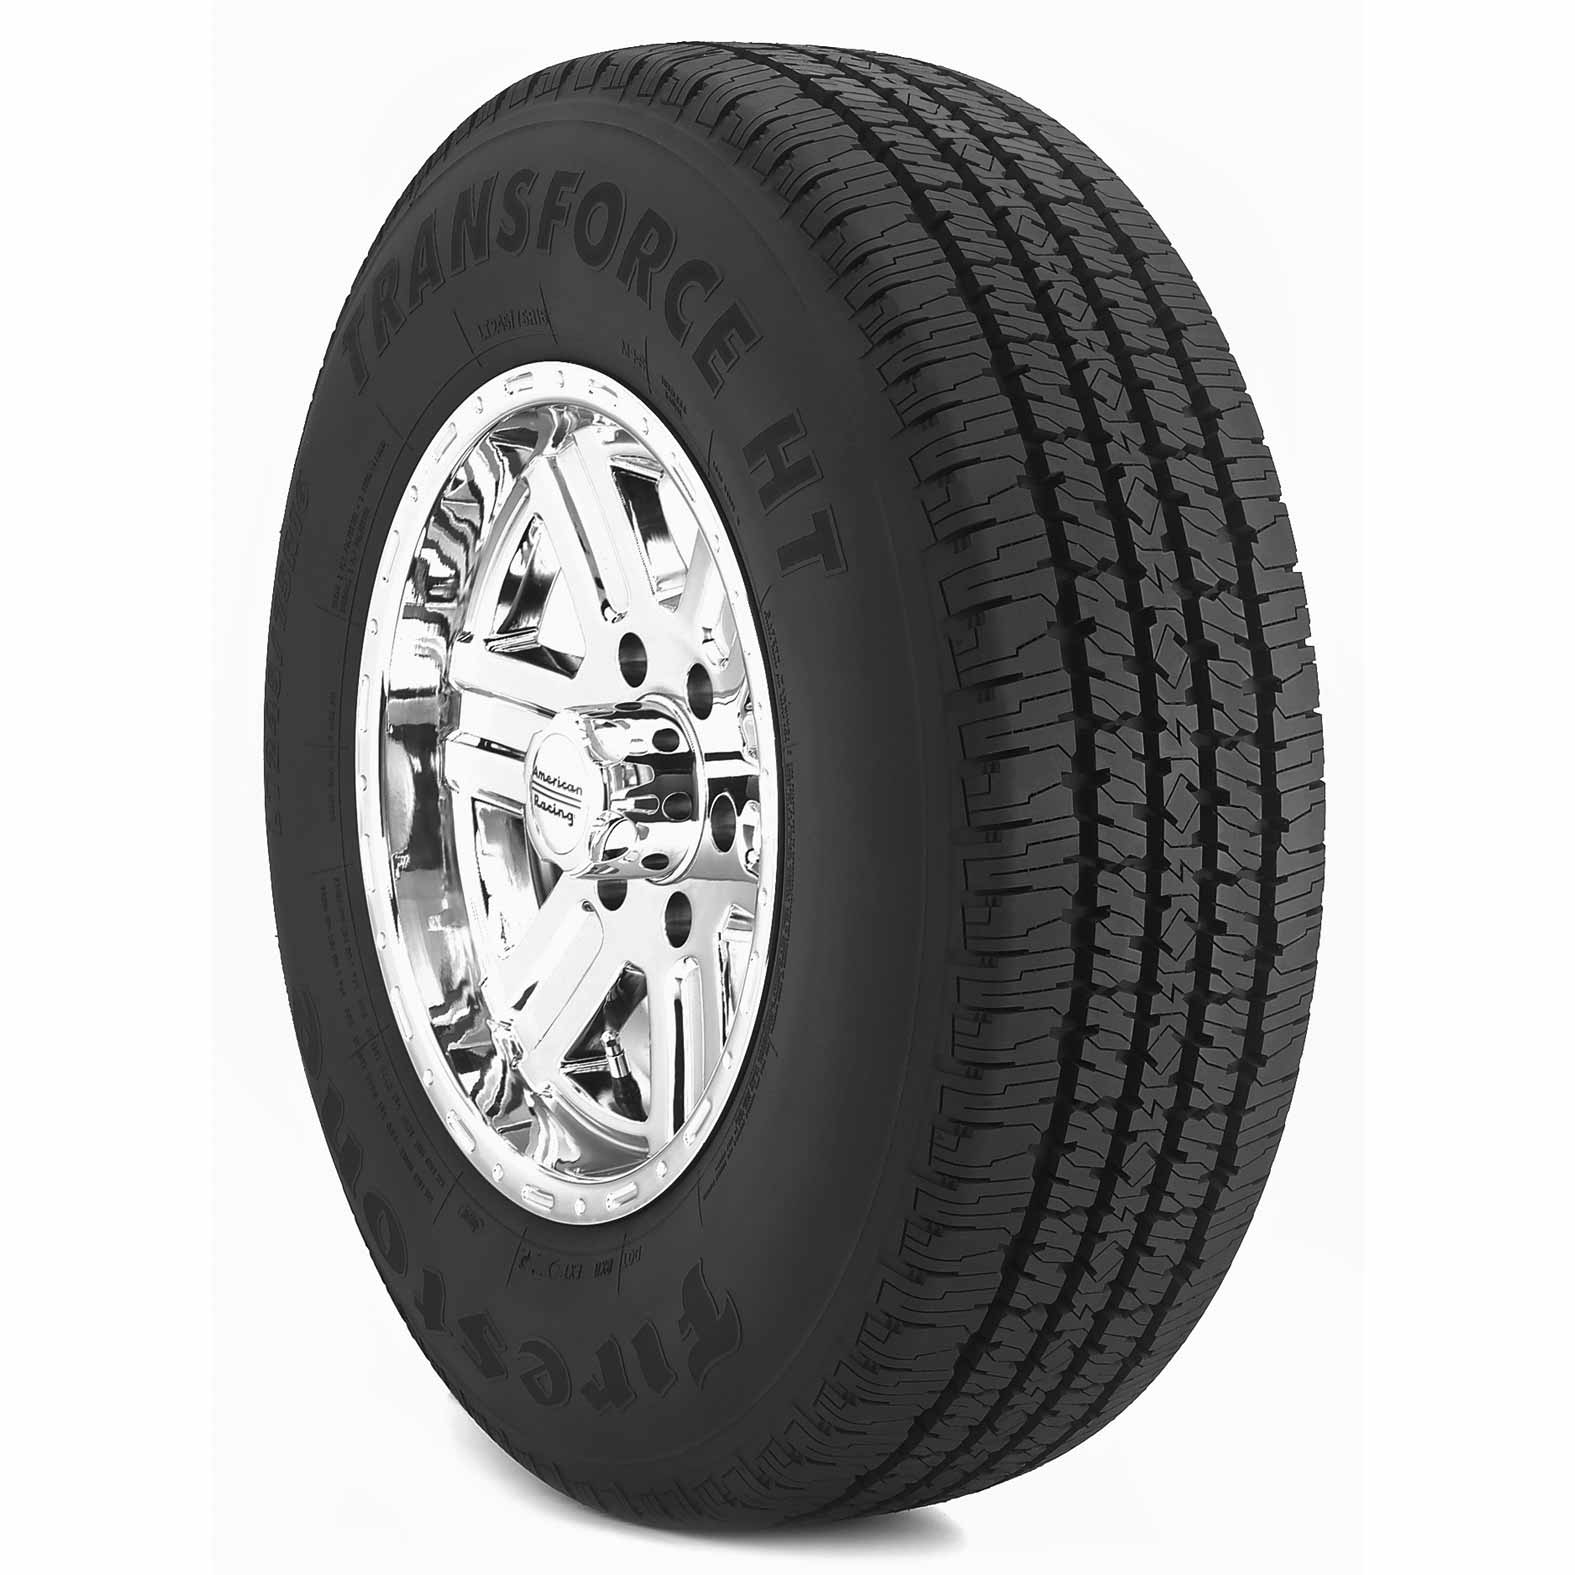 Firestone Transforce H/T tire - angle